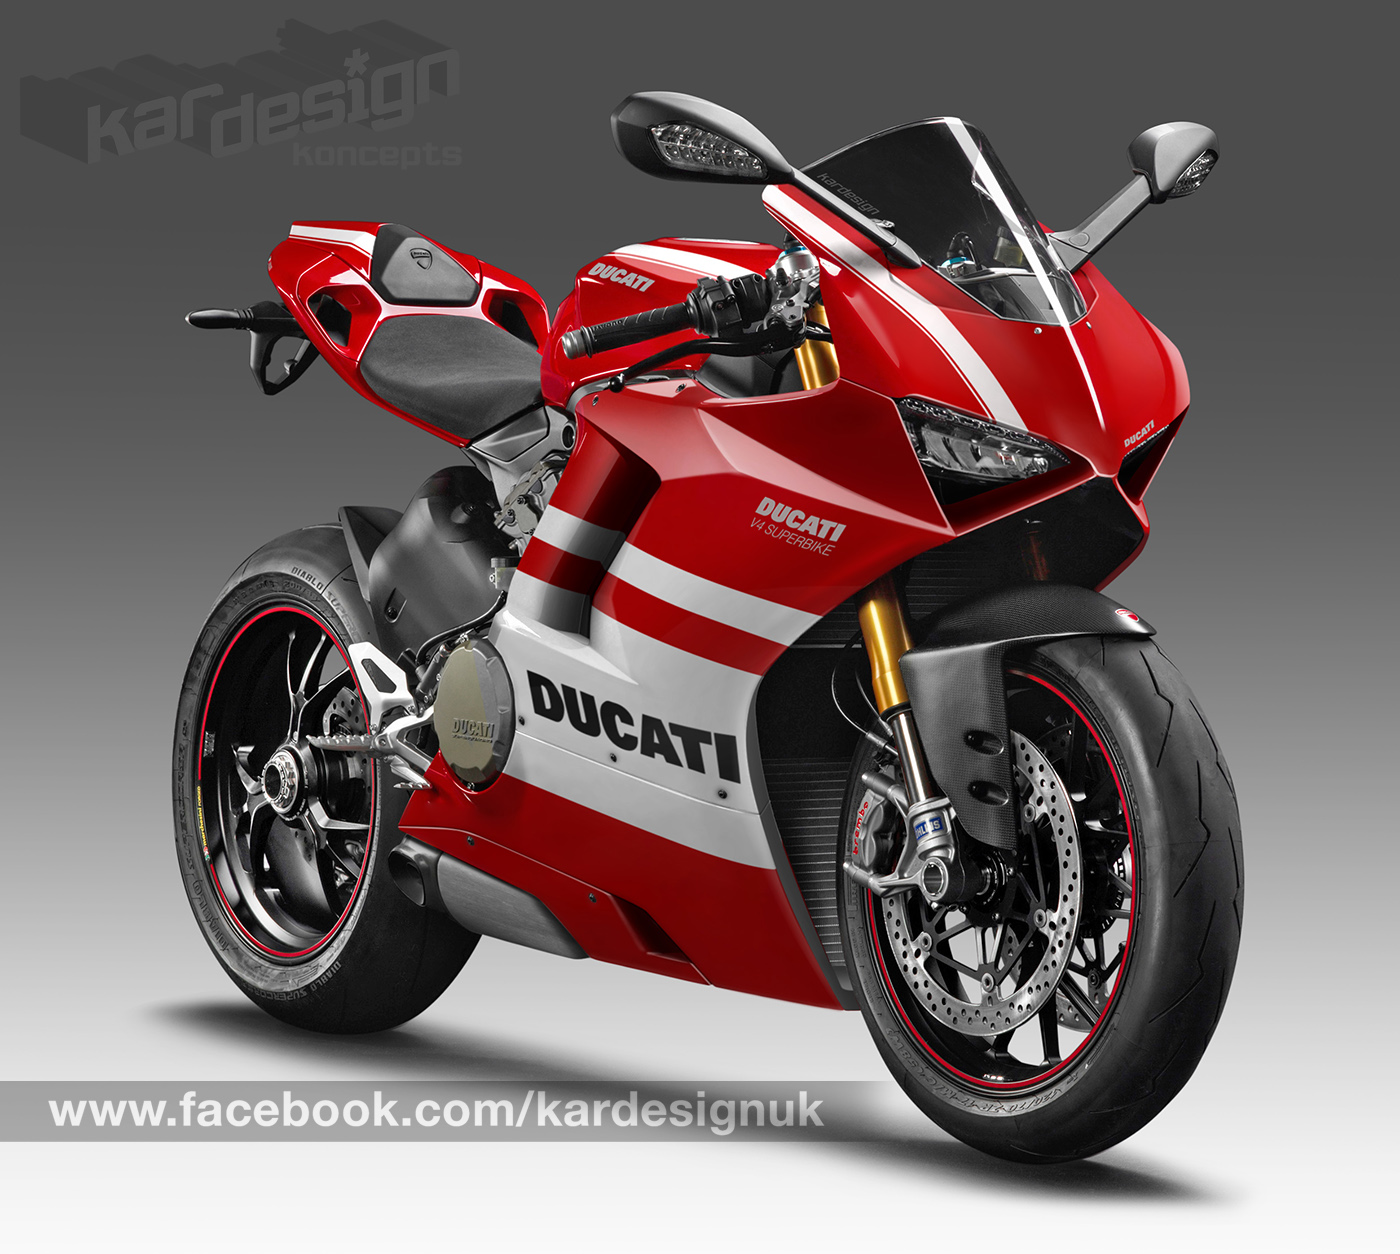 EXCLUSIVE First Look At The New Ducati V4